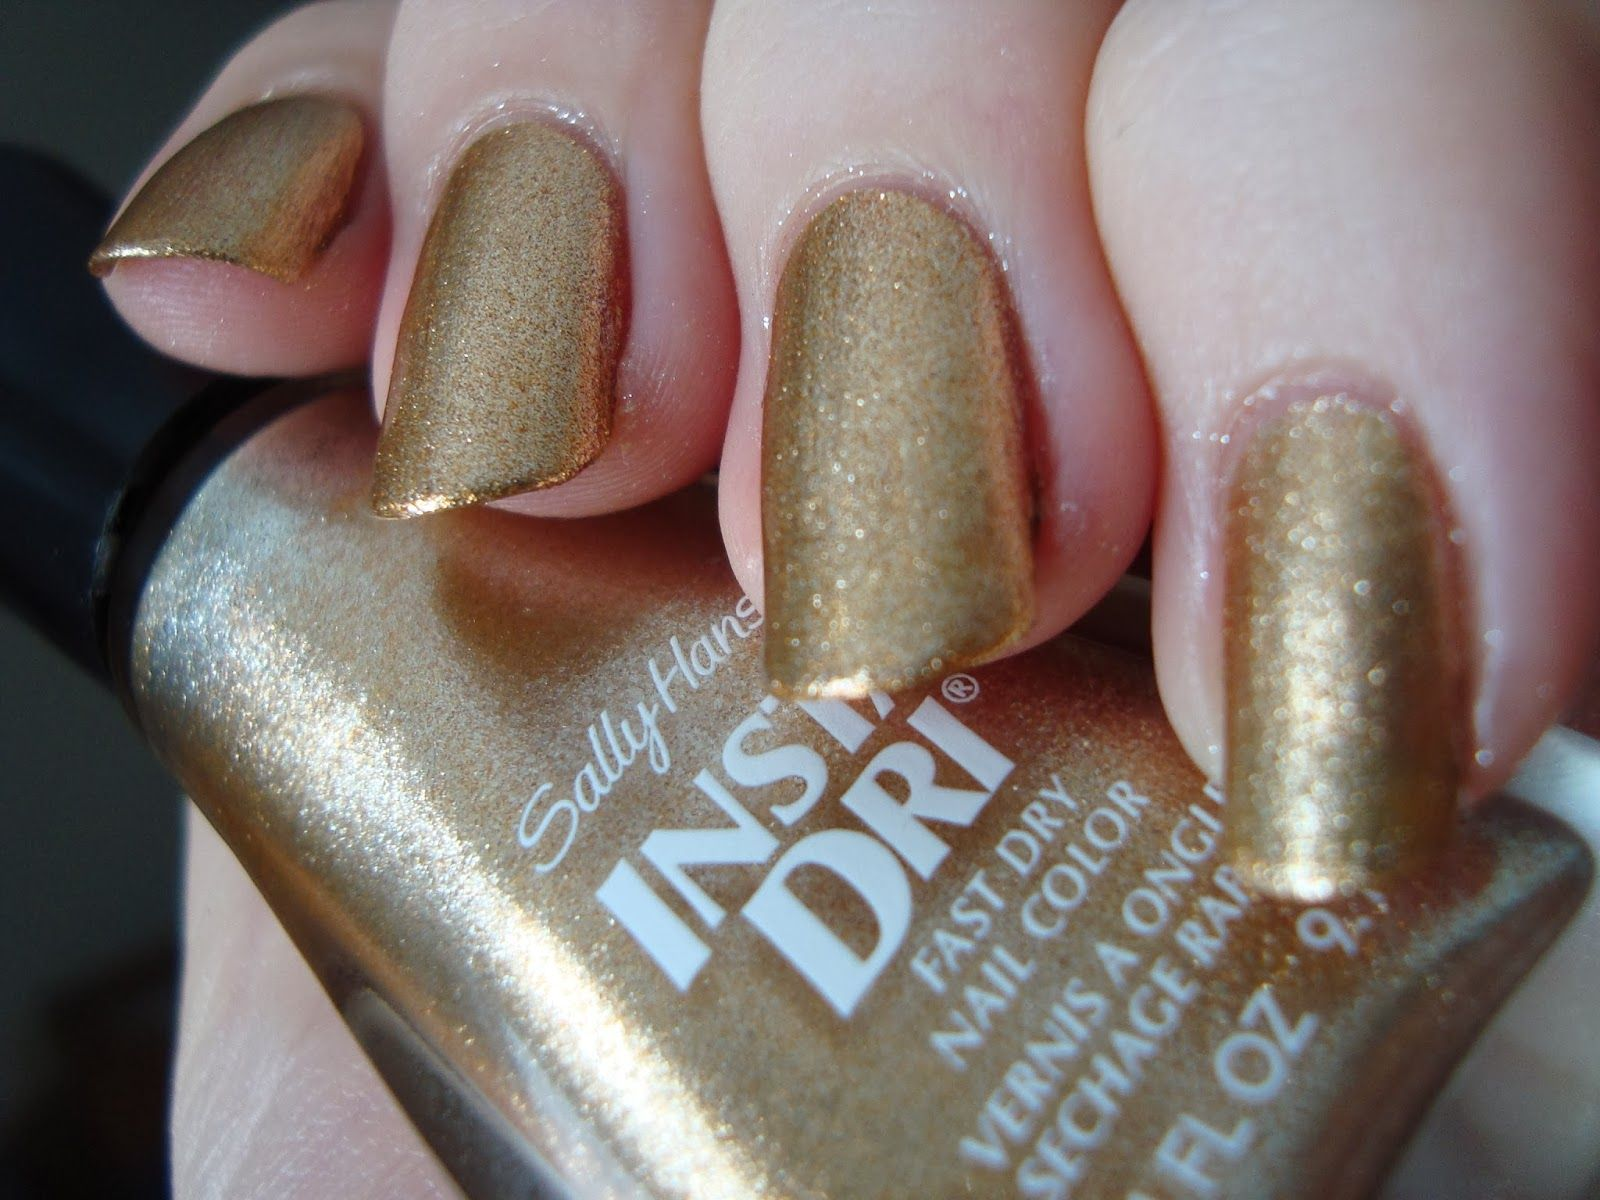 Sally Hansen Go For Gold Nice Metalic Color Shinier Than In This Pic Dries Fast But No So You Can T Do A Decent Job Of Putting It On